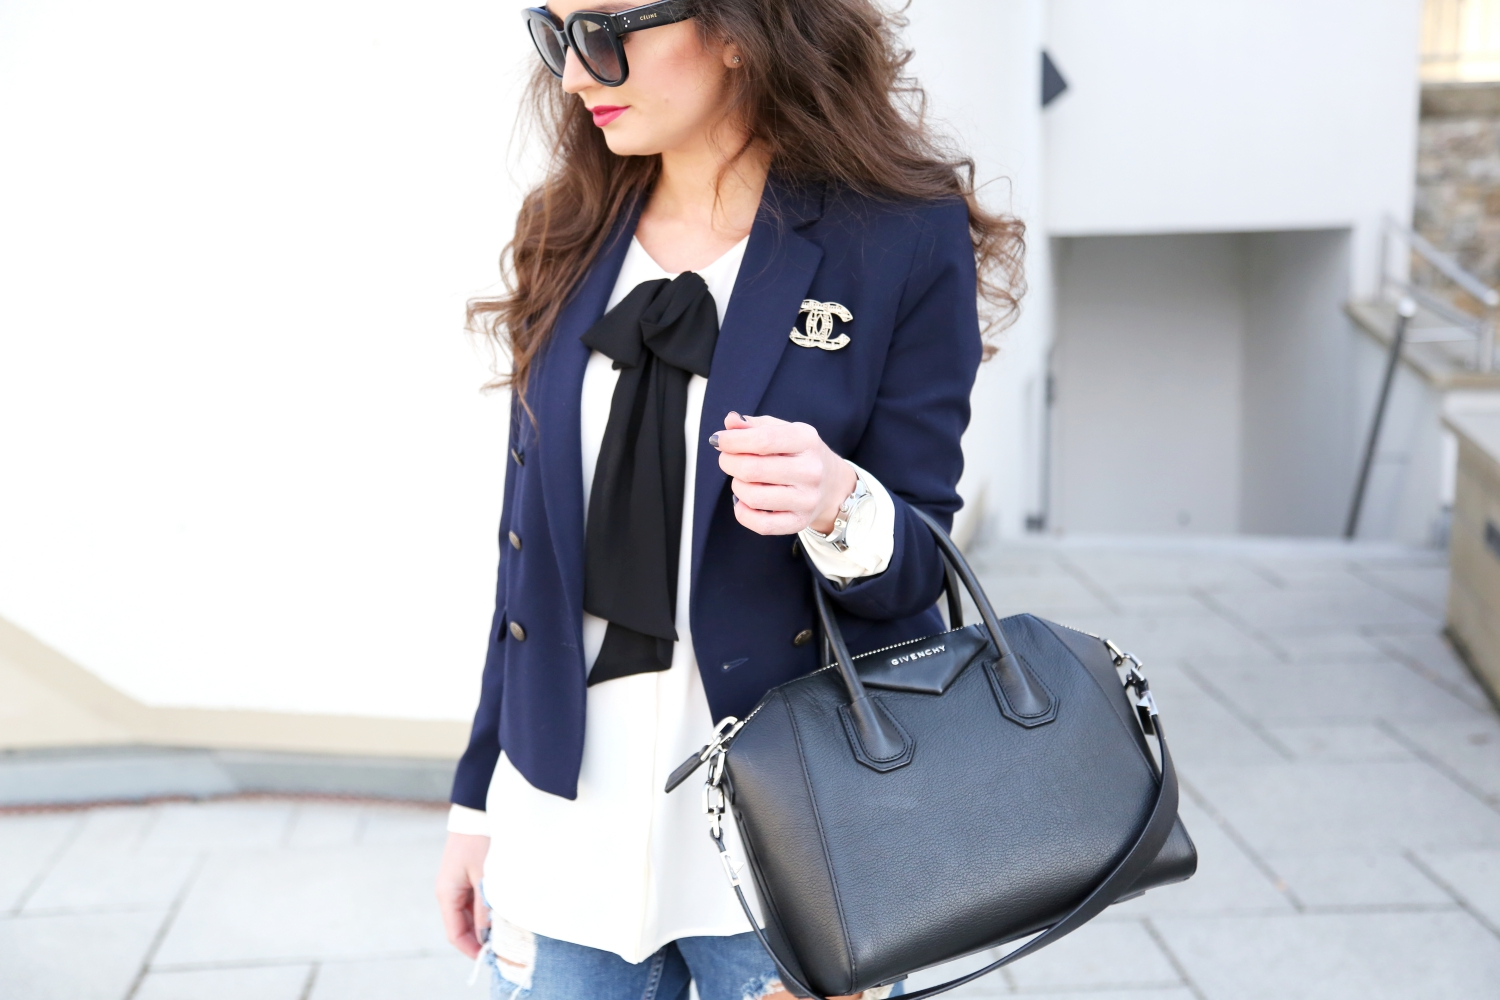 outfit-fashionhippieloves-celine-audrey-givenchy-antigona-chanel-brooch-pin-silver-2